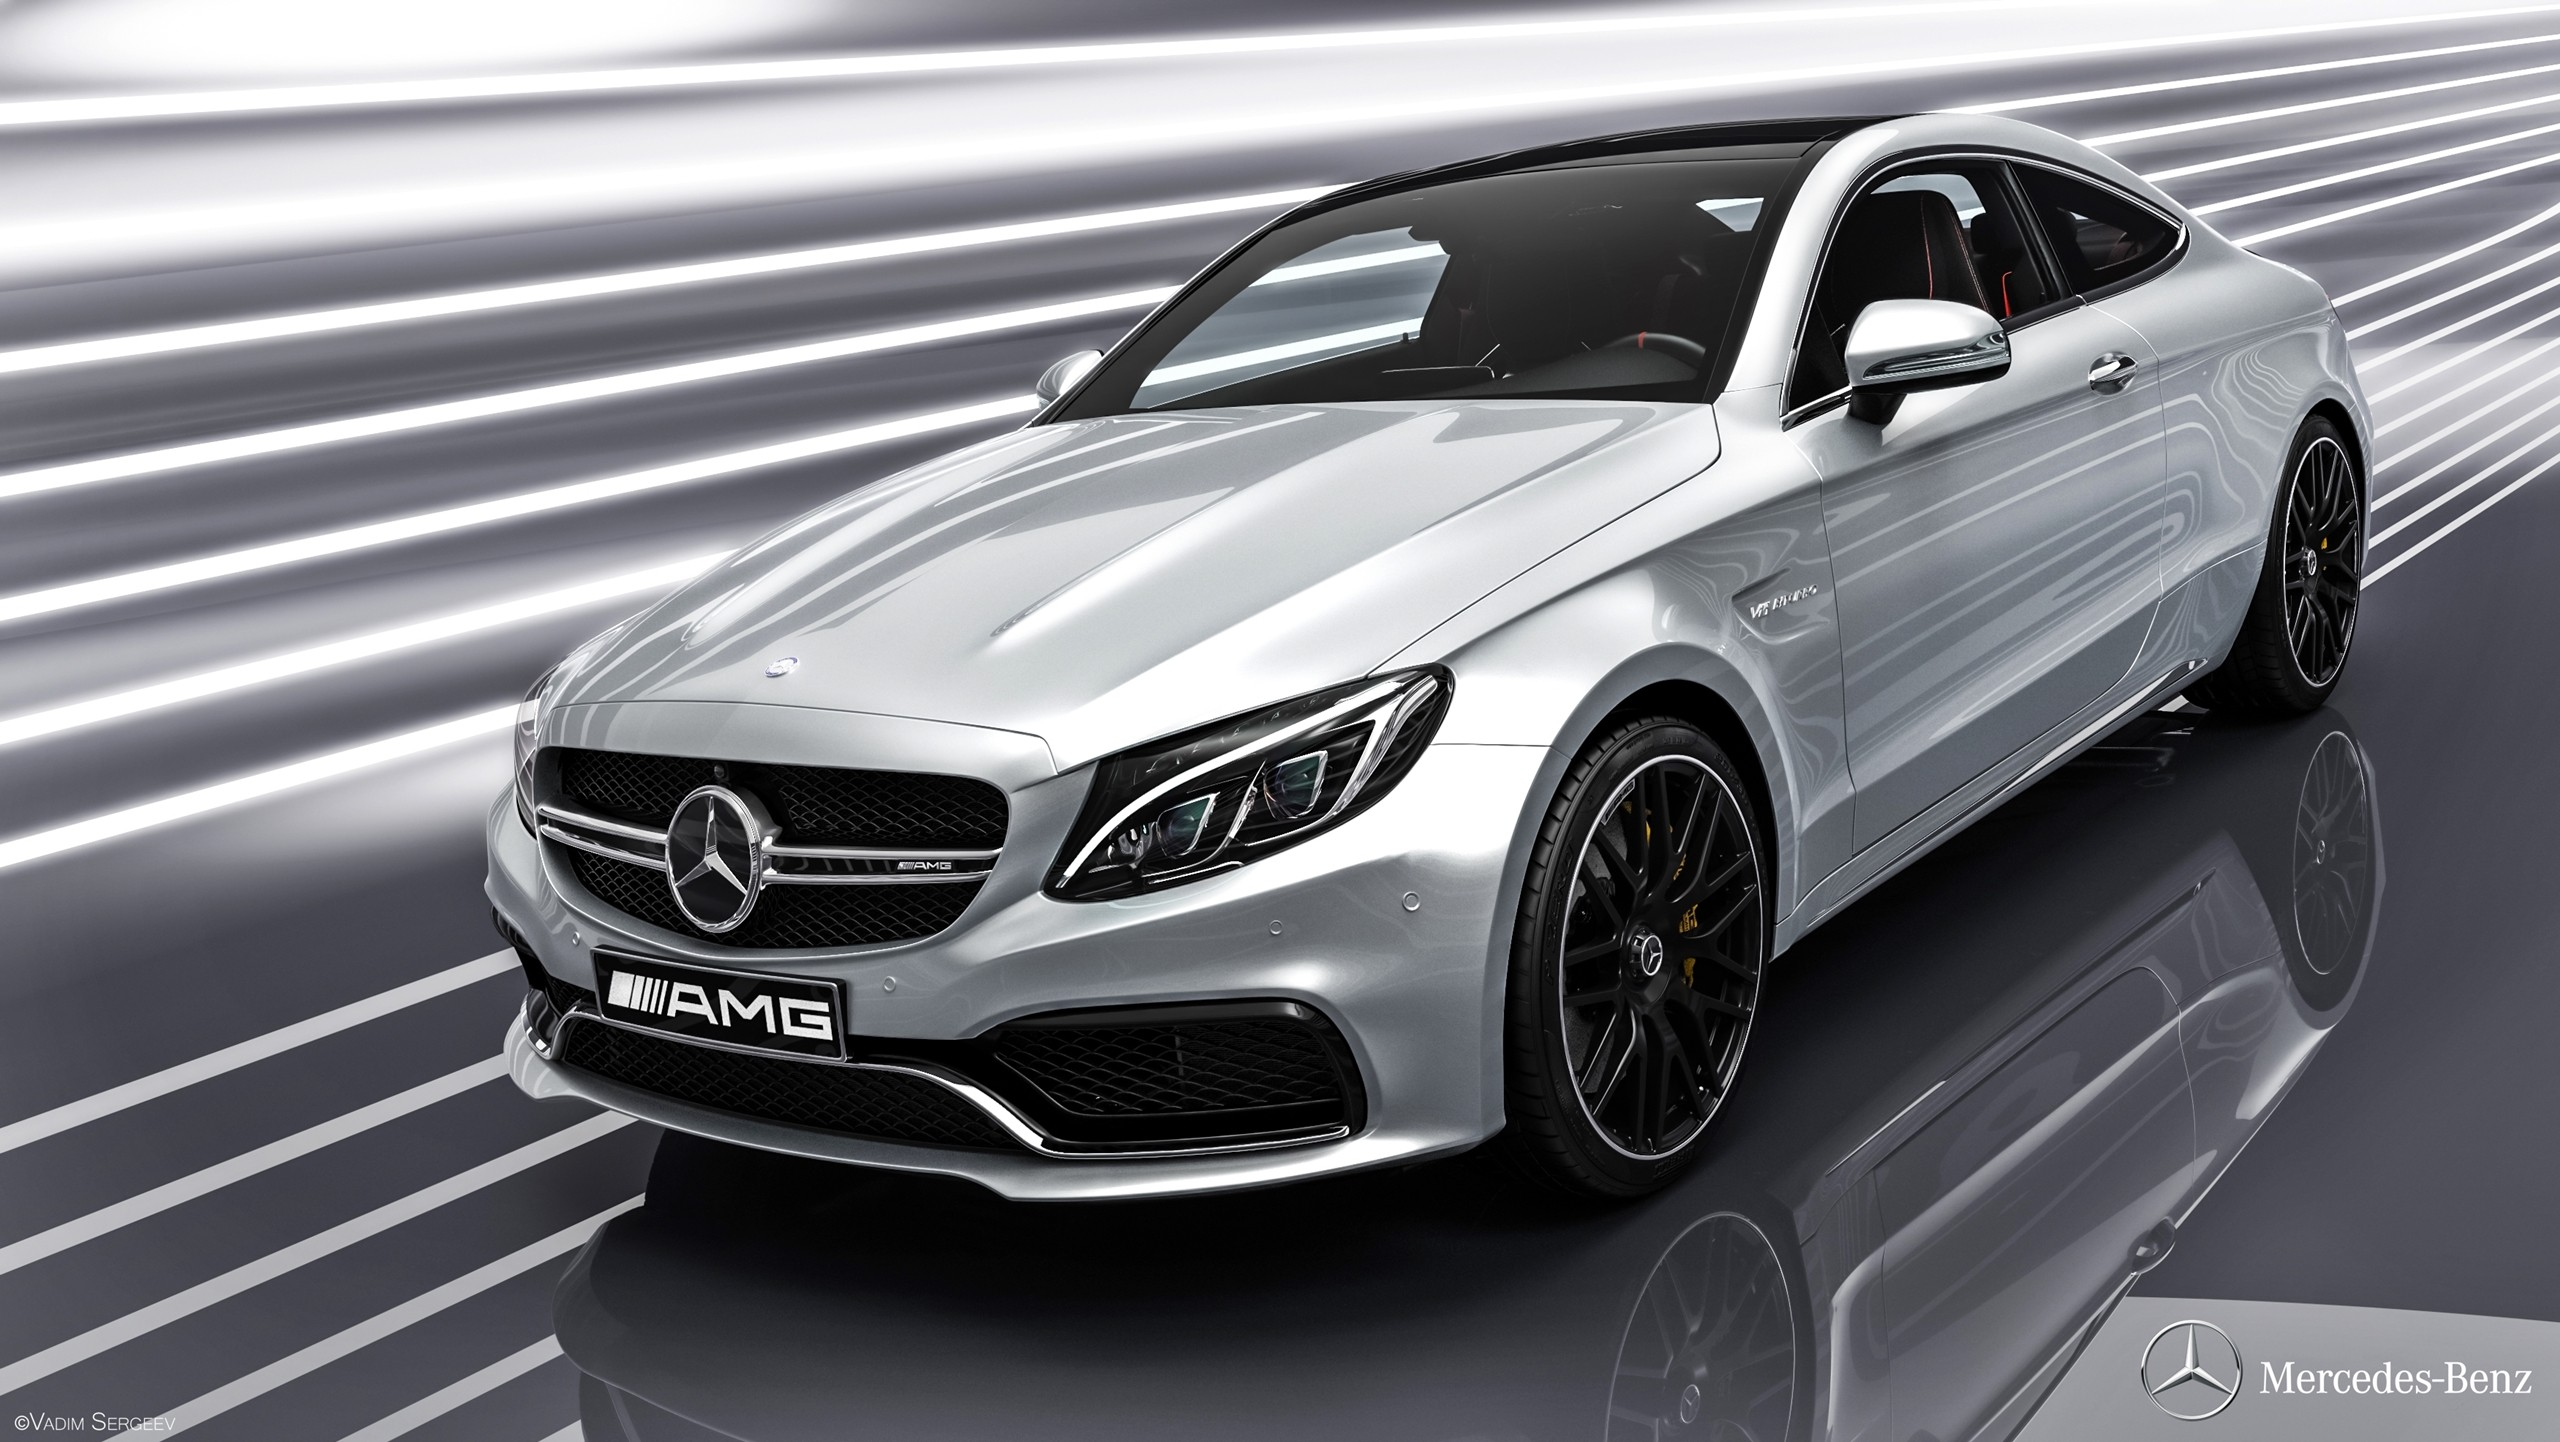 Mercedes-Benz C63 AMG Coupe 2016 - 2K.jpg